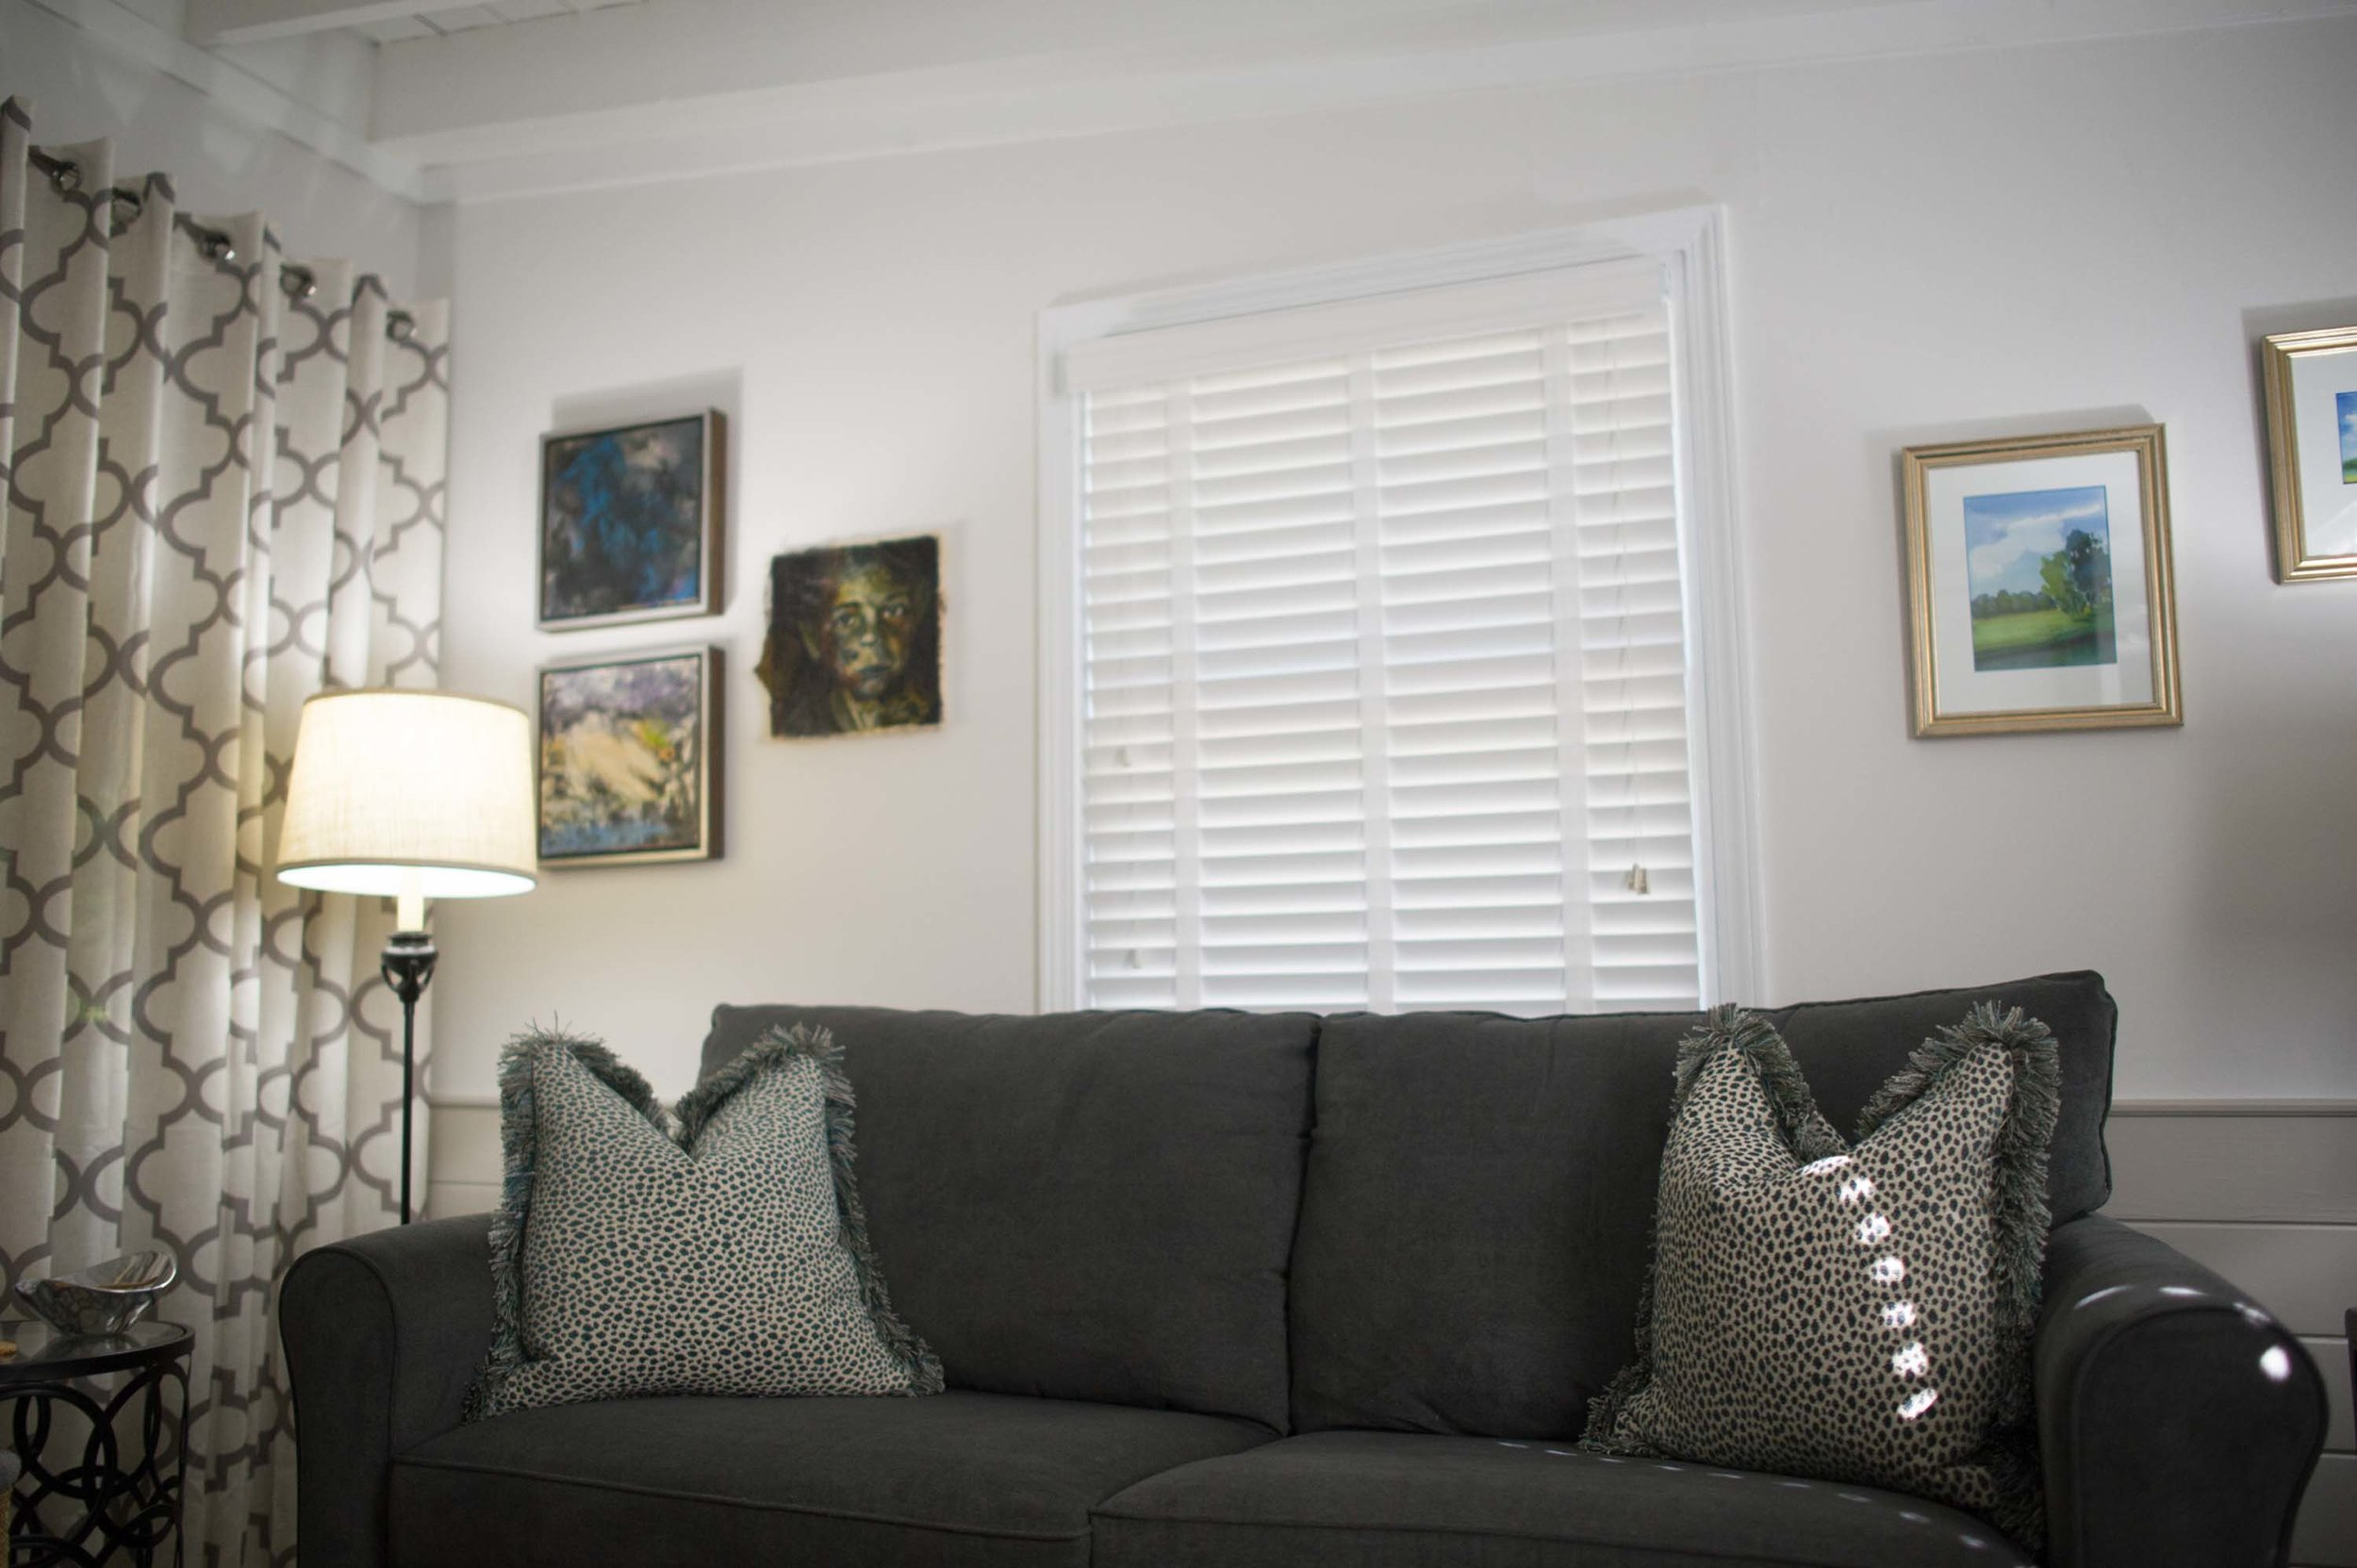 Sitting Room with Sofa, Artwork, Lamps & Window Treatments